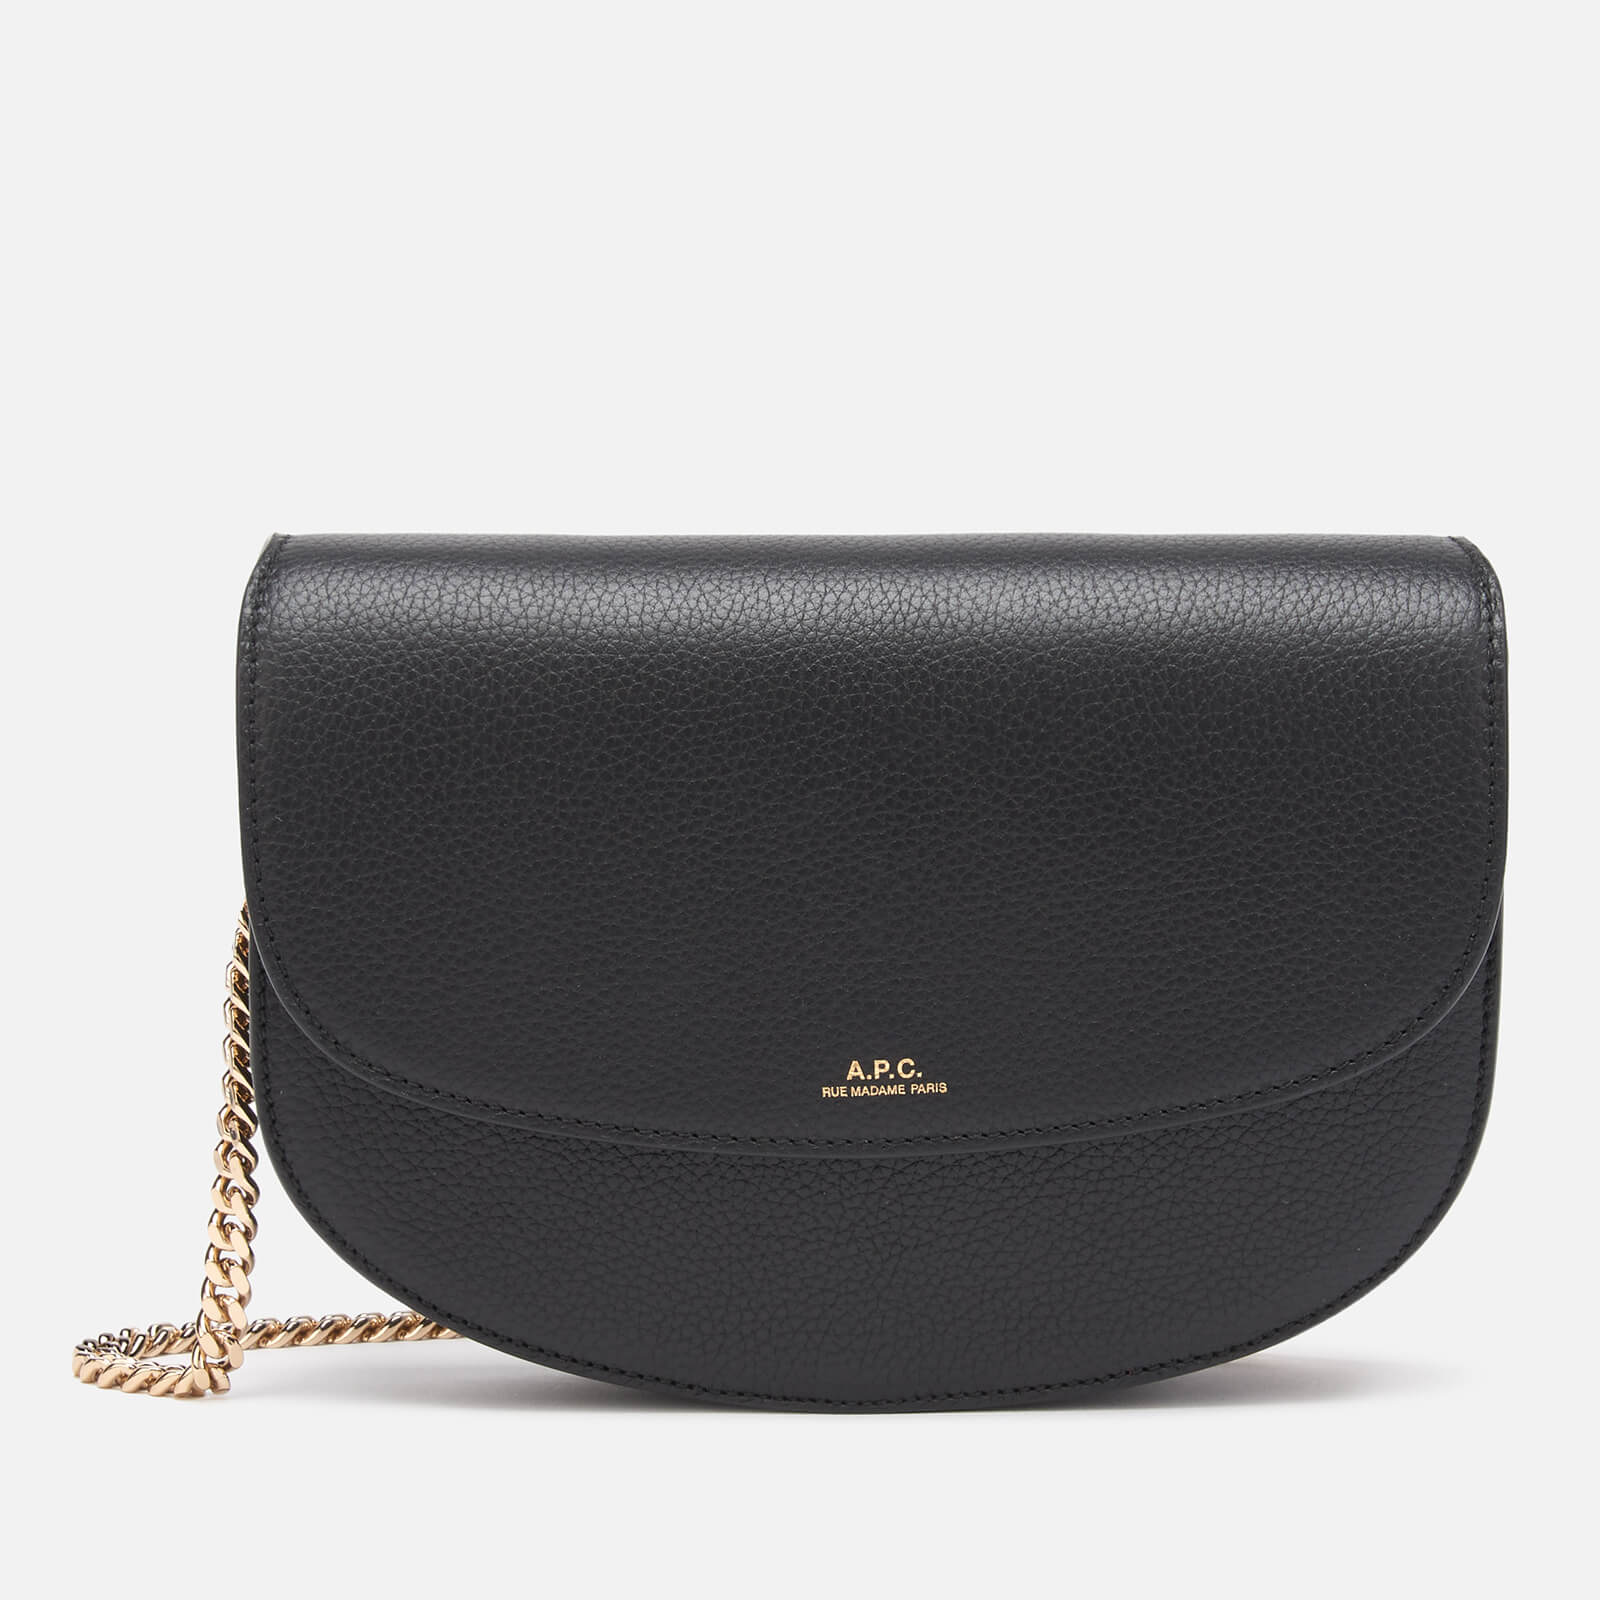 A.P.C. Women's Geneve Chain Cross Body Bag - Black